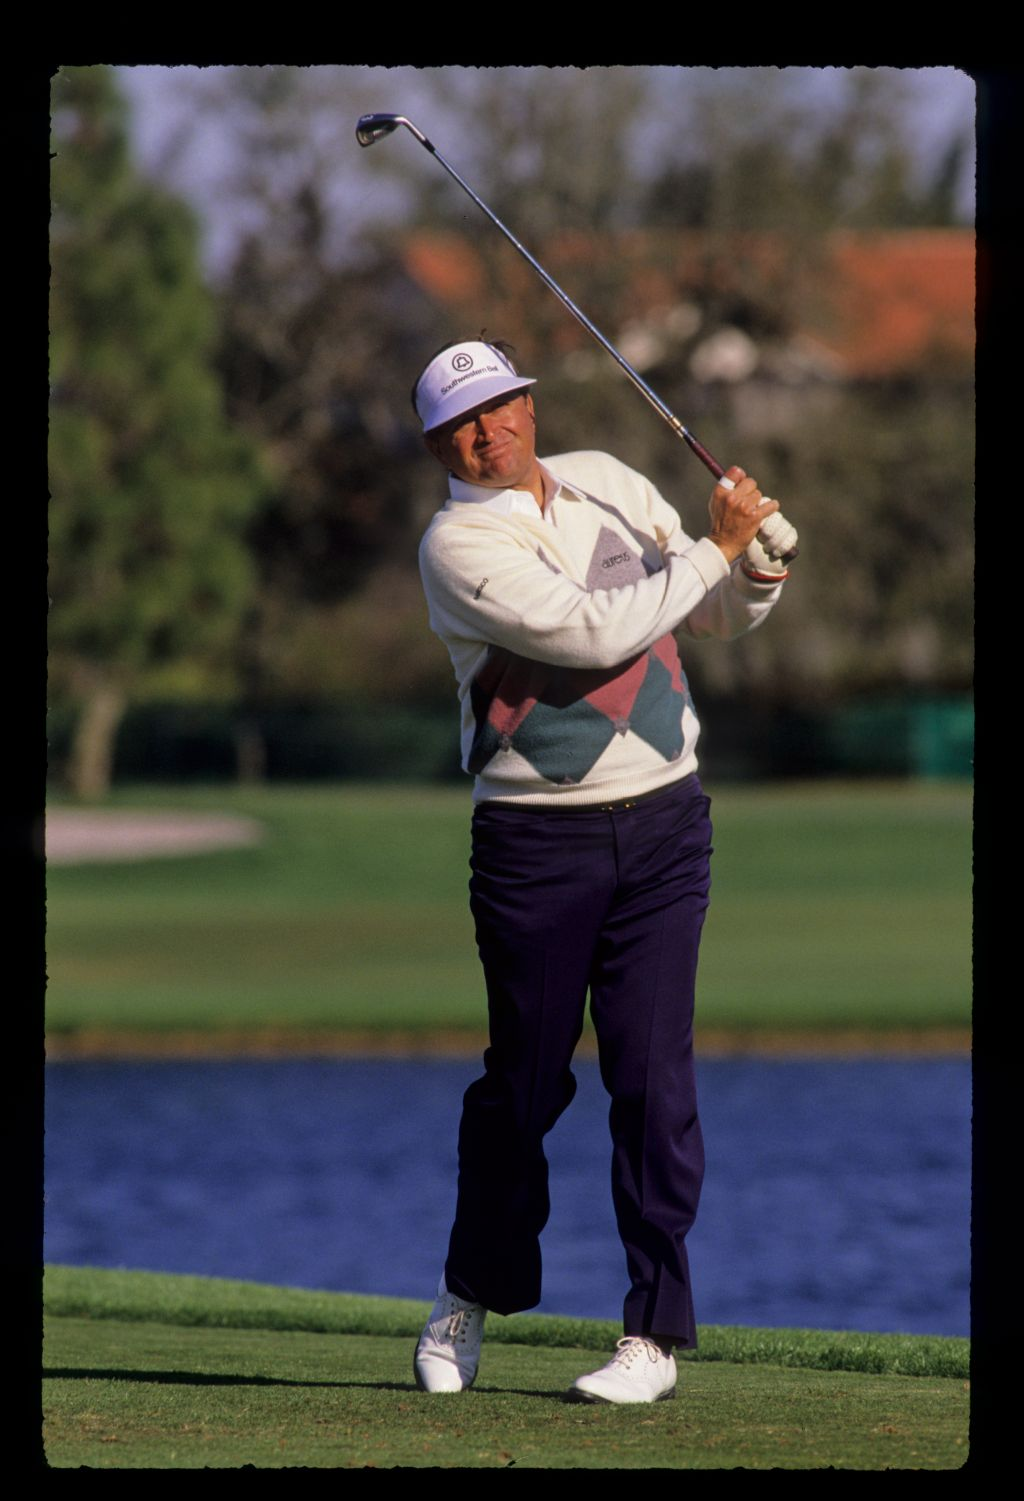 American golfer Ray Floyd on the tee at the 1989 Bay Hill Nestle Invitational